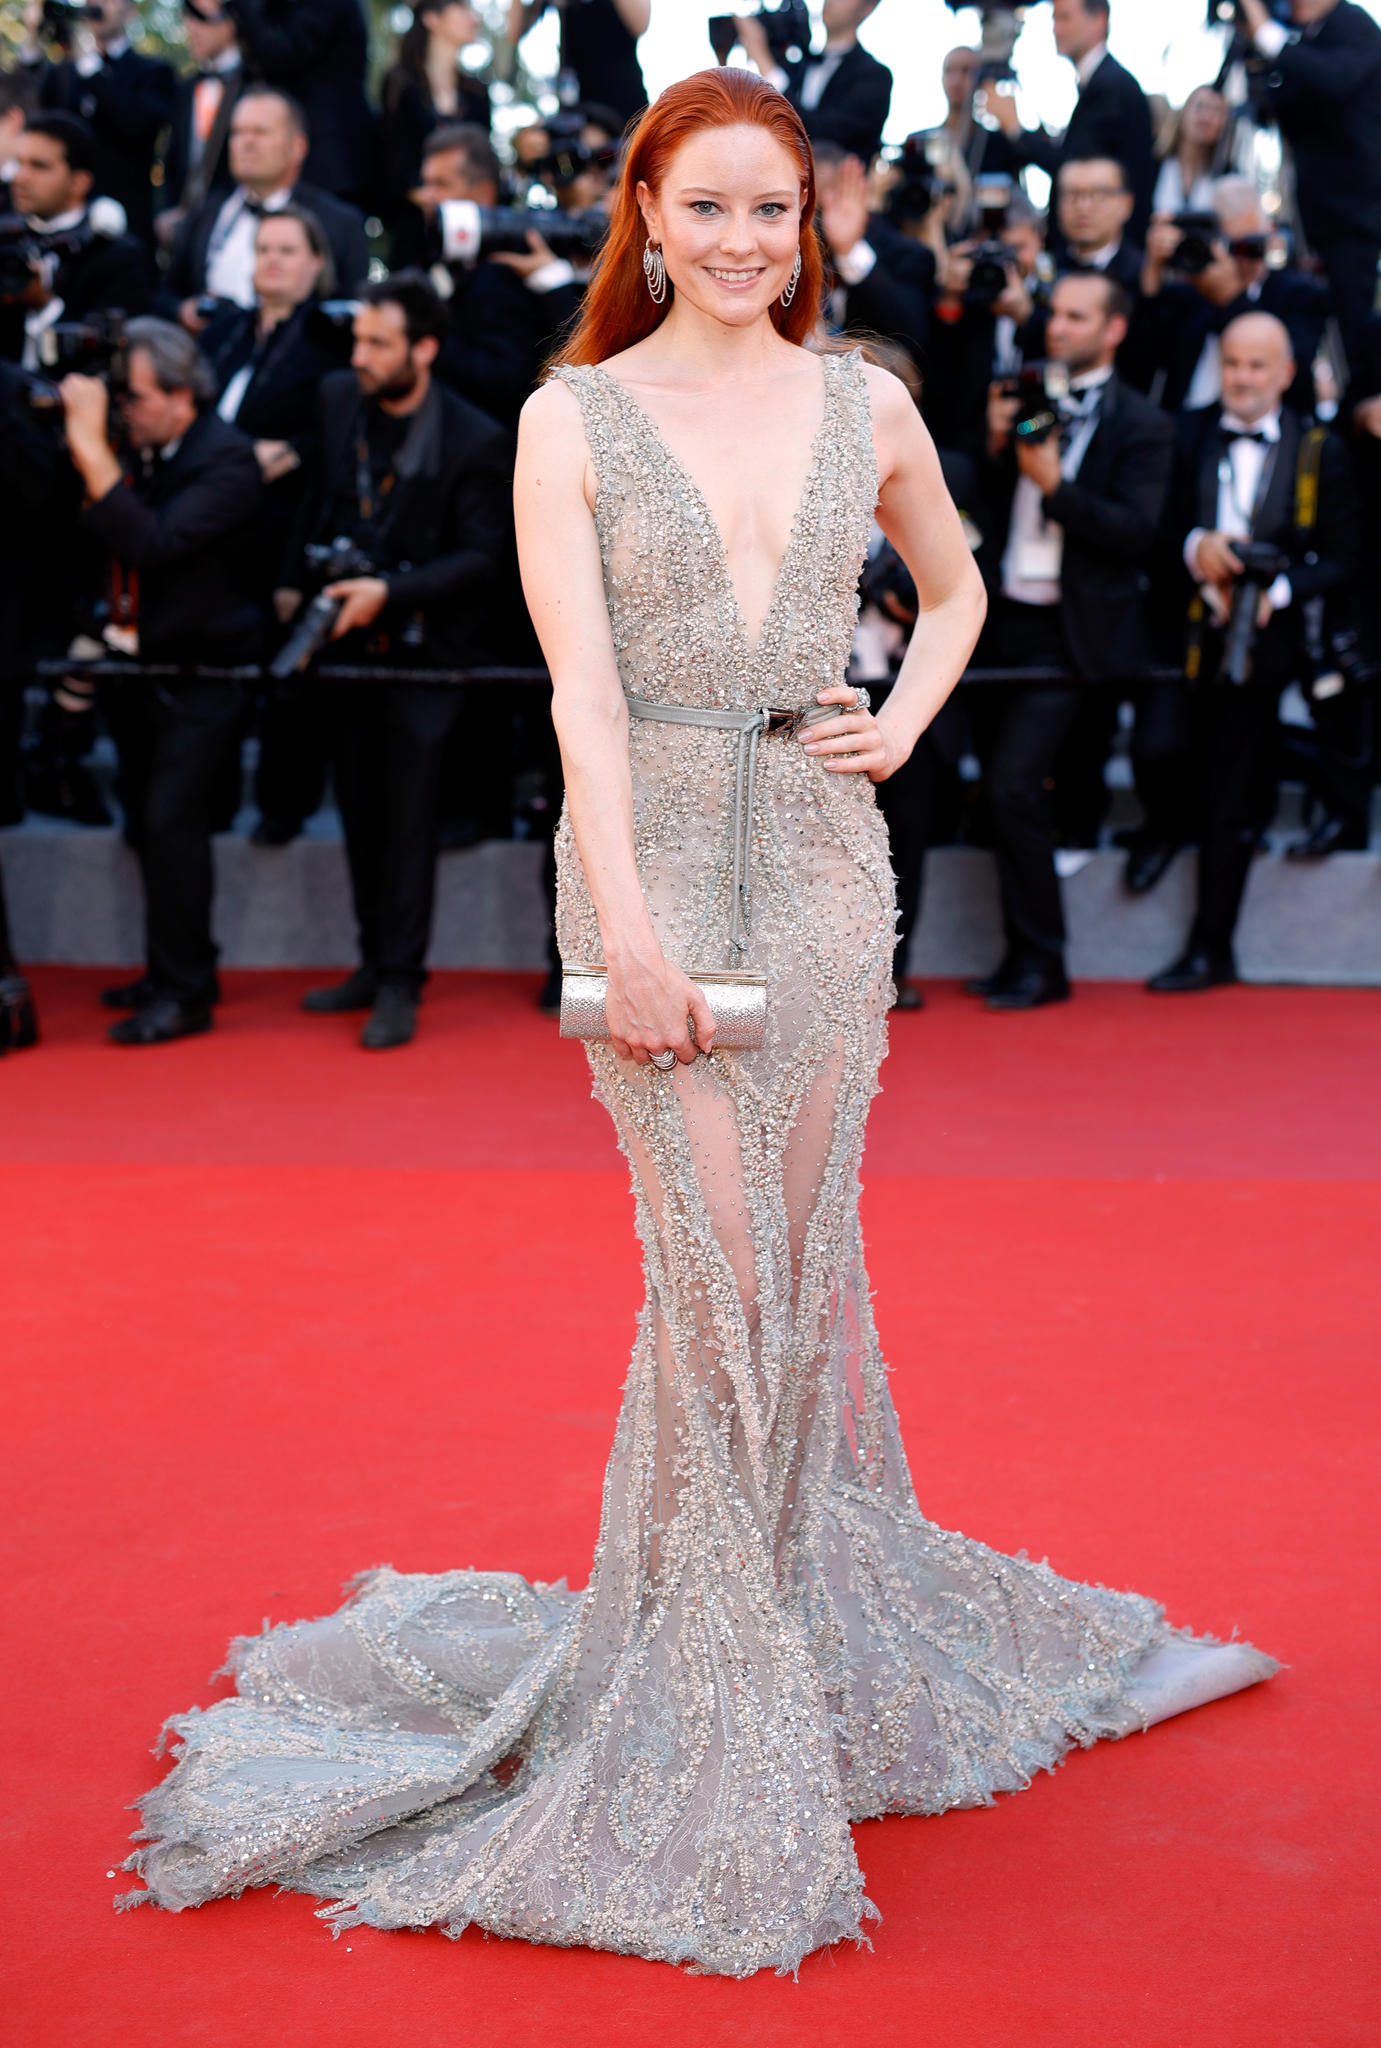 Roter Teppich 2017: Barbara Meier in Cannes